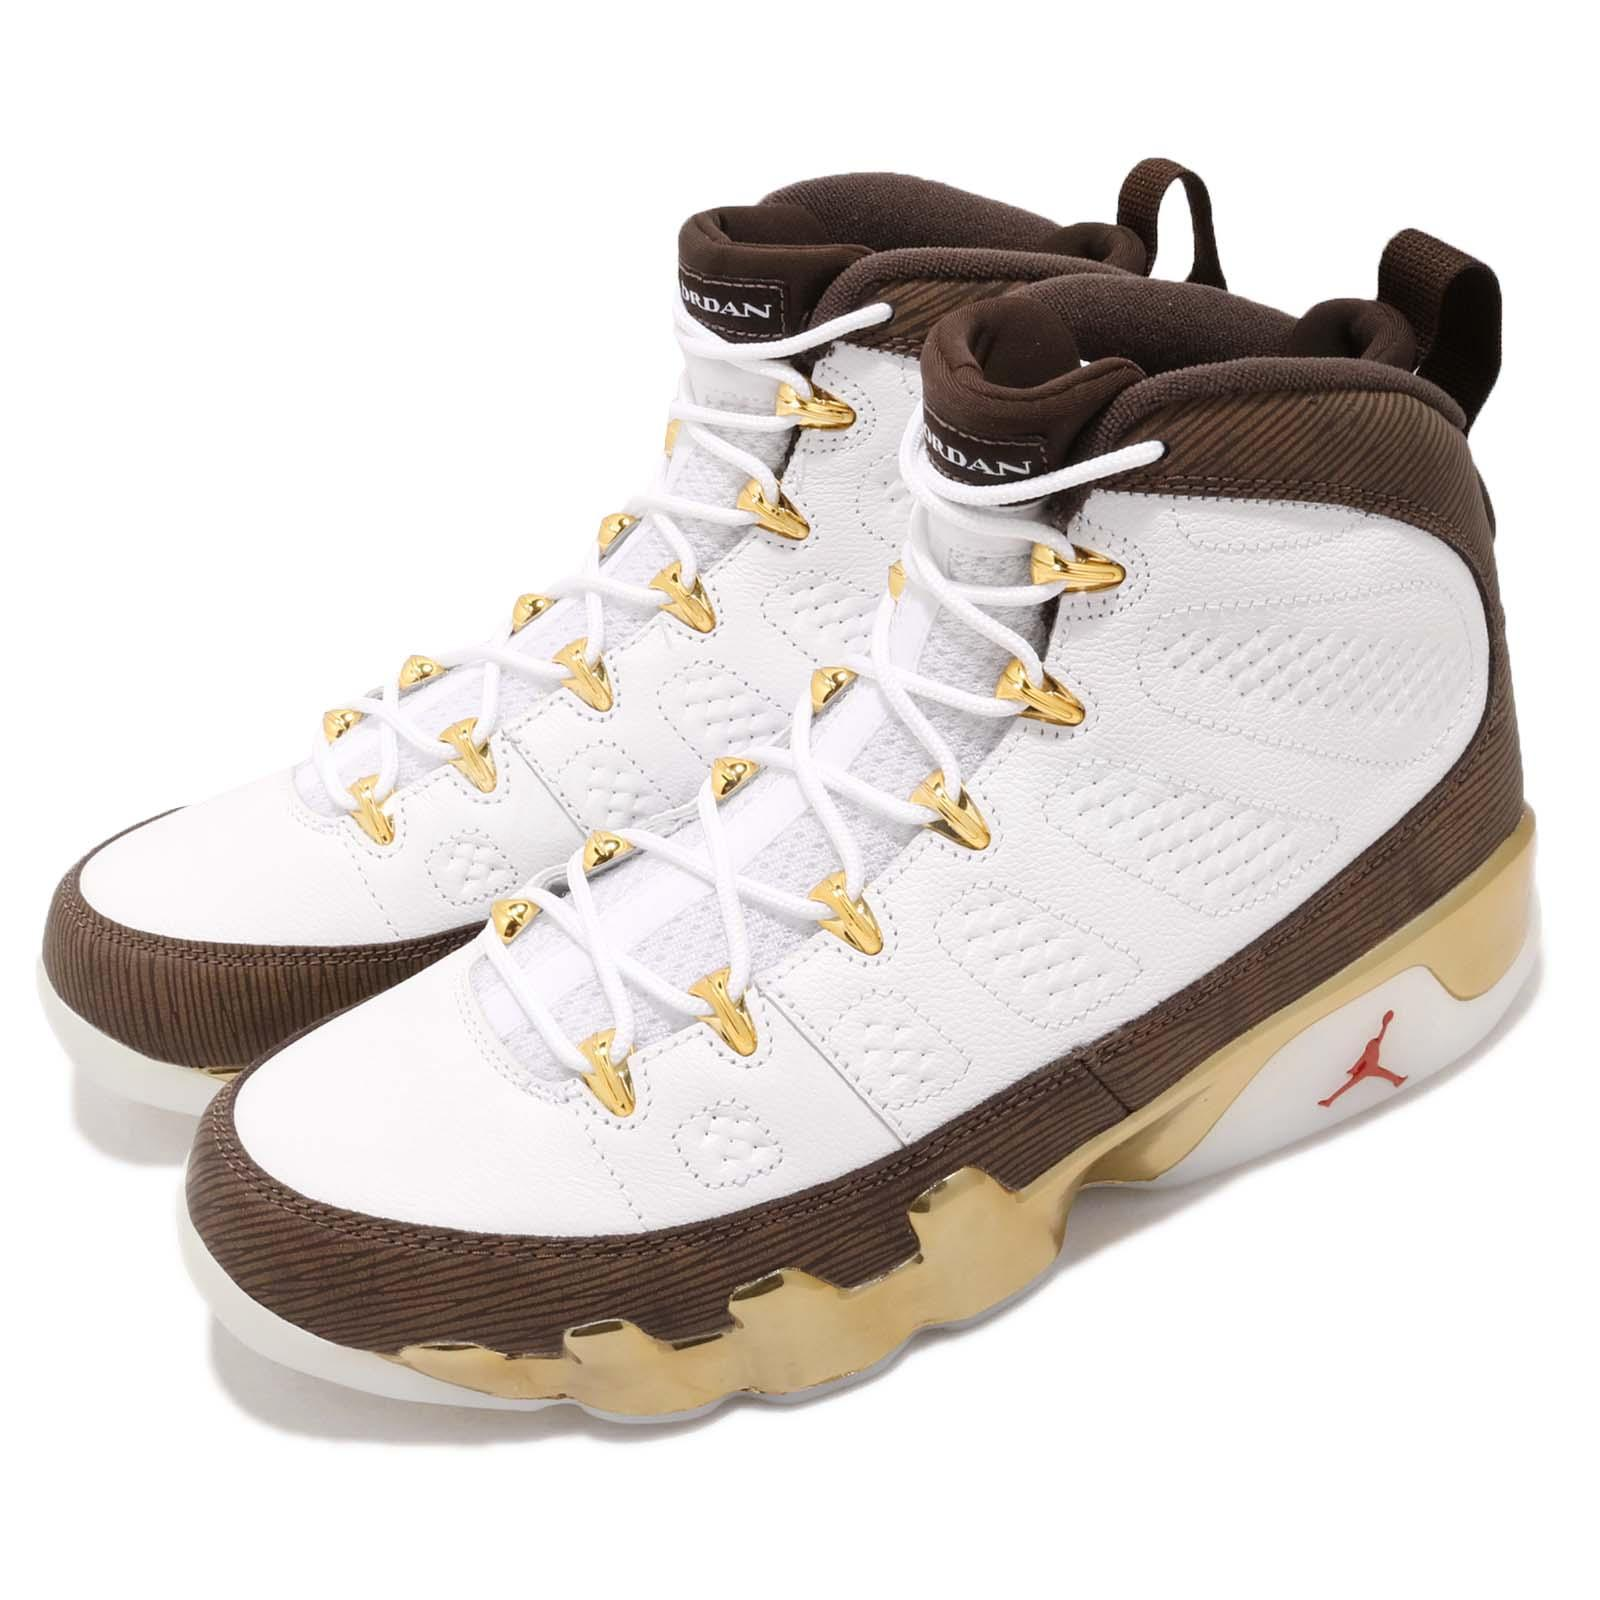 35bb3188309a Nike Air Jordan 9 Retro NCAA MOP Melo Carmelo Anthony AJ9 IX 302370 ...